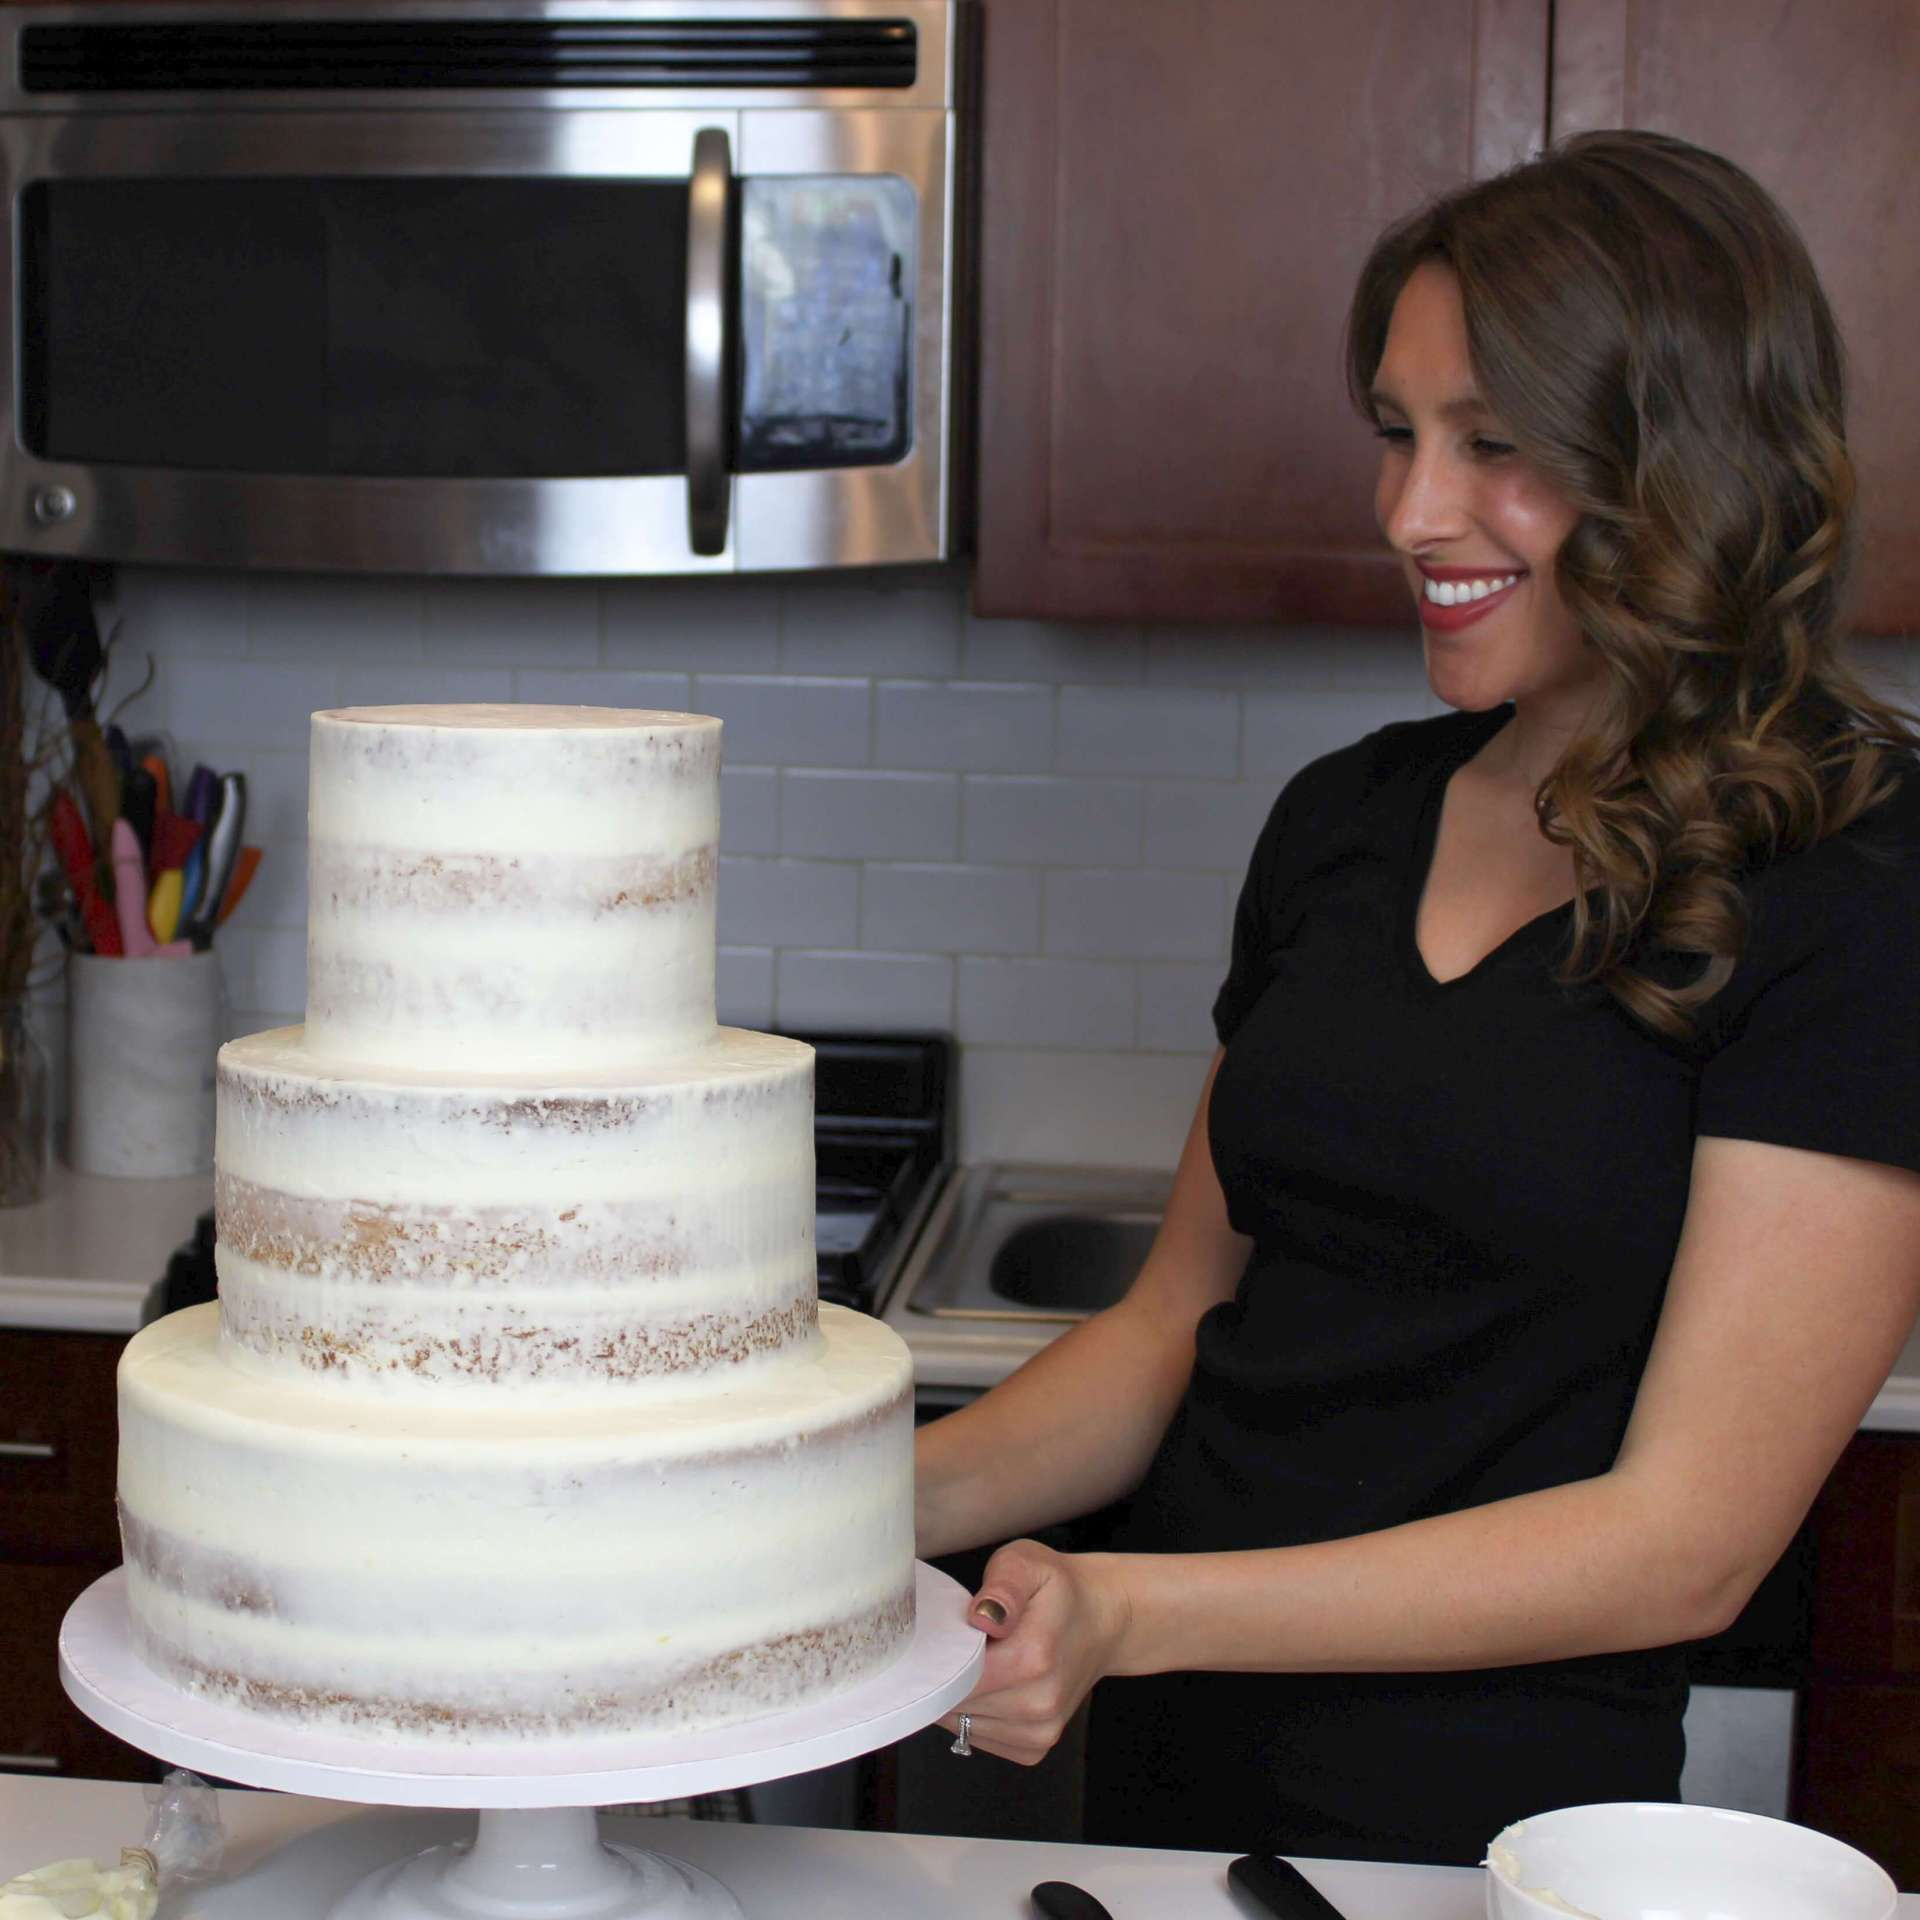 Making Your Own Wedding Cake Should You Chelsweets Wedding Cake Recipe Cake Portion Guide Make Your Own Wedding Cakes